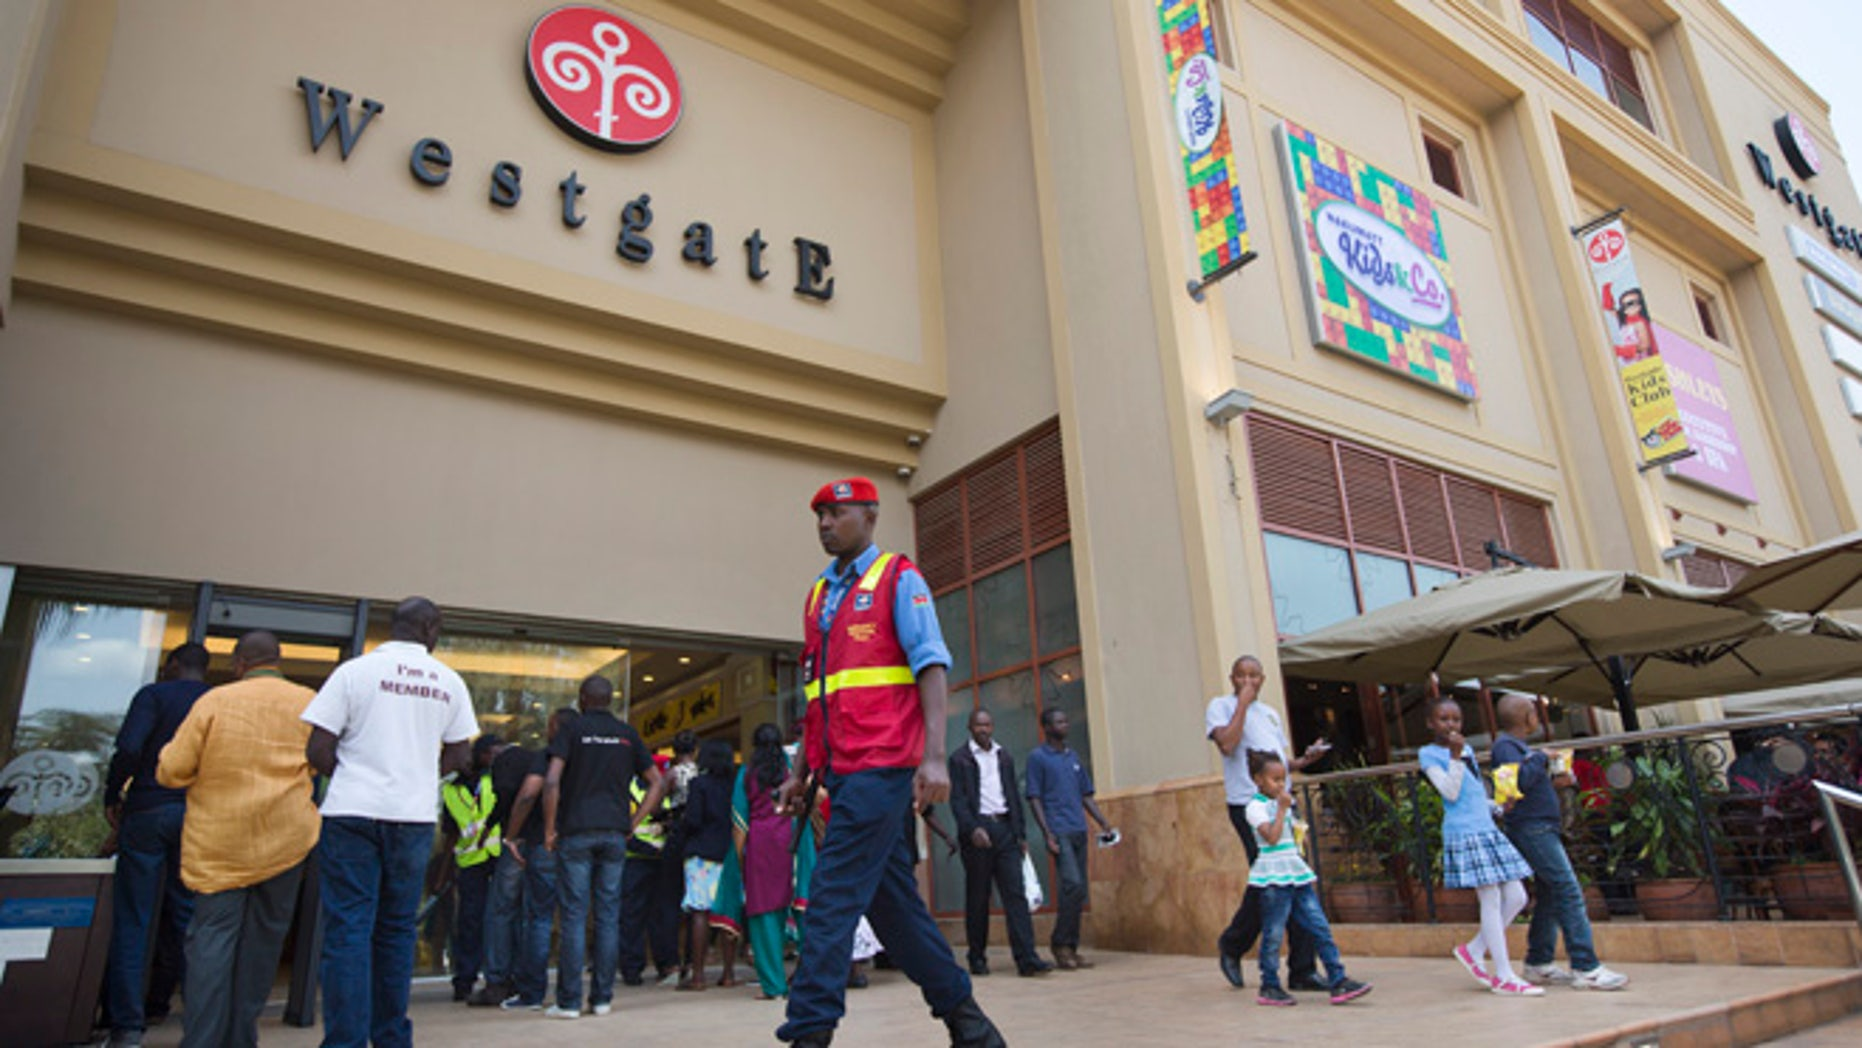 A security guard patrols outside the reopened Westgate Shopping Mall, nearly two years after a terrorist attack there left at least 67 people dead, in the capital Nairobi, Kenya Saturday, July 18, 2015. Hundreds of shoppers thronged through the reopened mall Saturday, following two years of repairs after security forces battled four gunmen from Somalia's al-Qaida-linked al-Shabab militant group there in September 2013. (AP Photo/Ben Curtis)